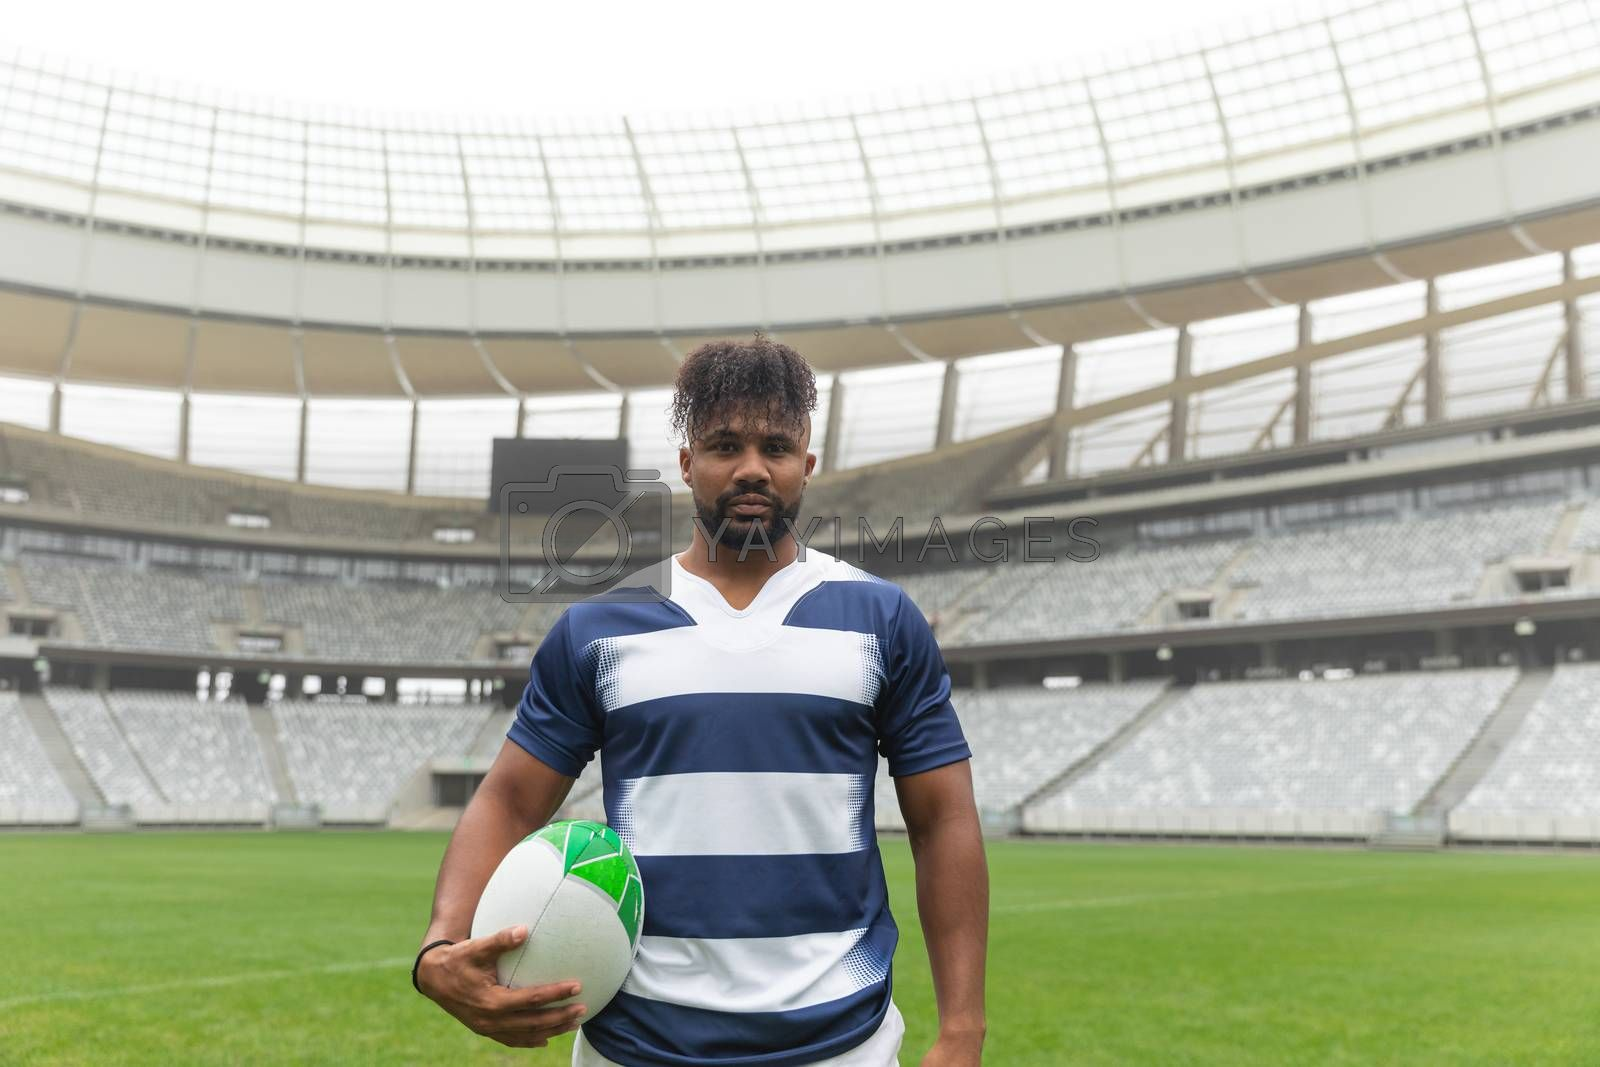 Portrait of African American rugby player standing with rugby ball in stadium